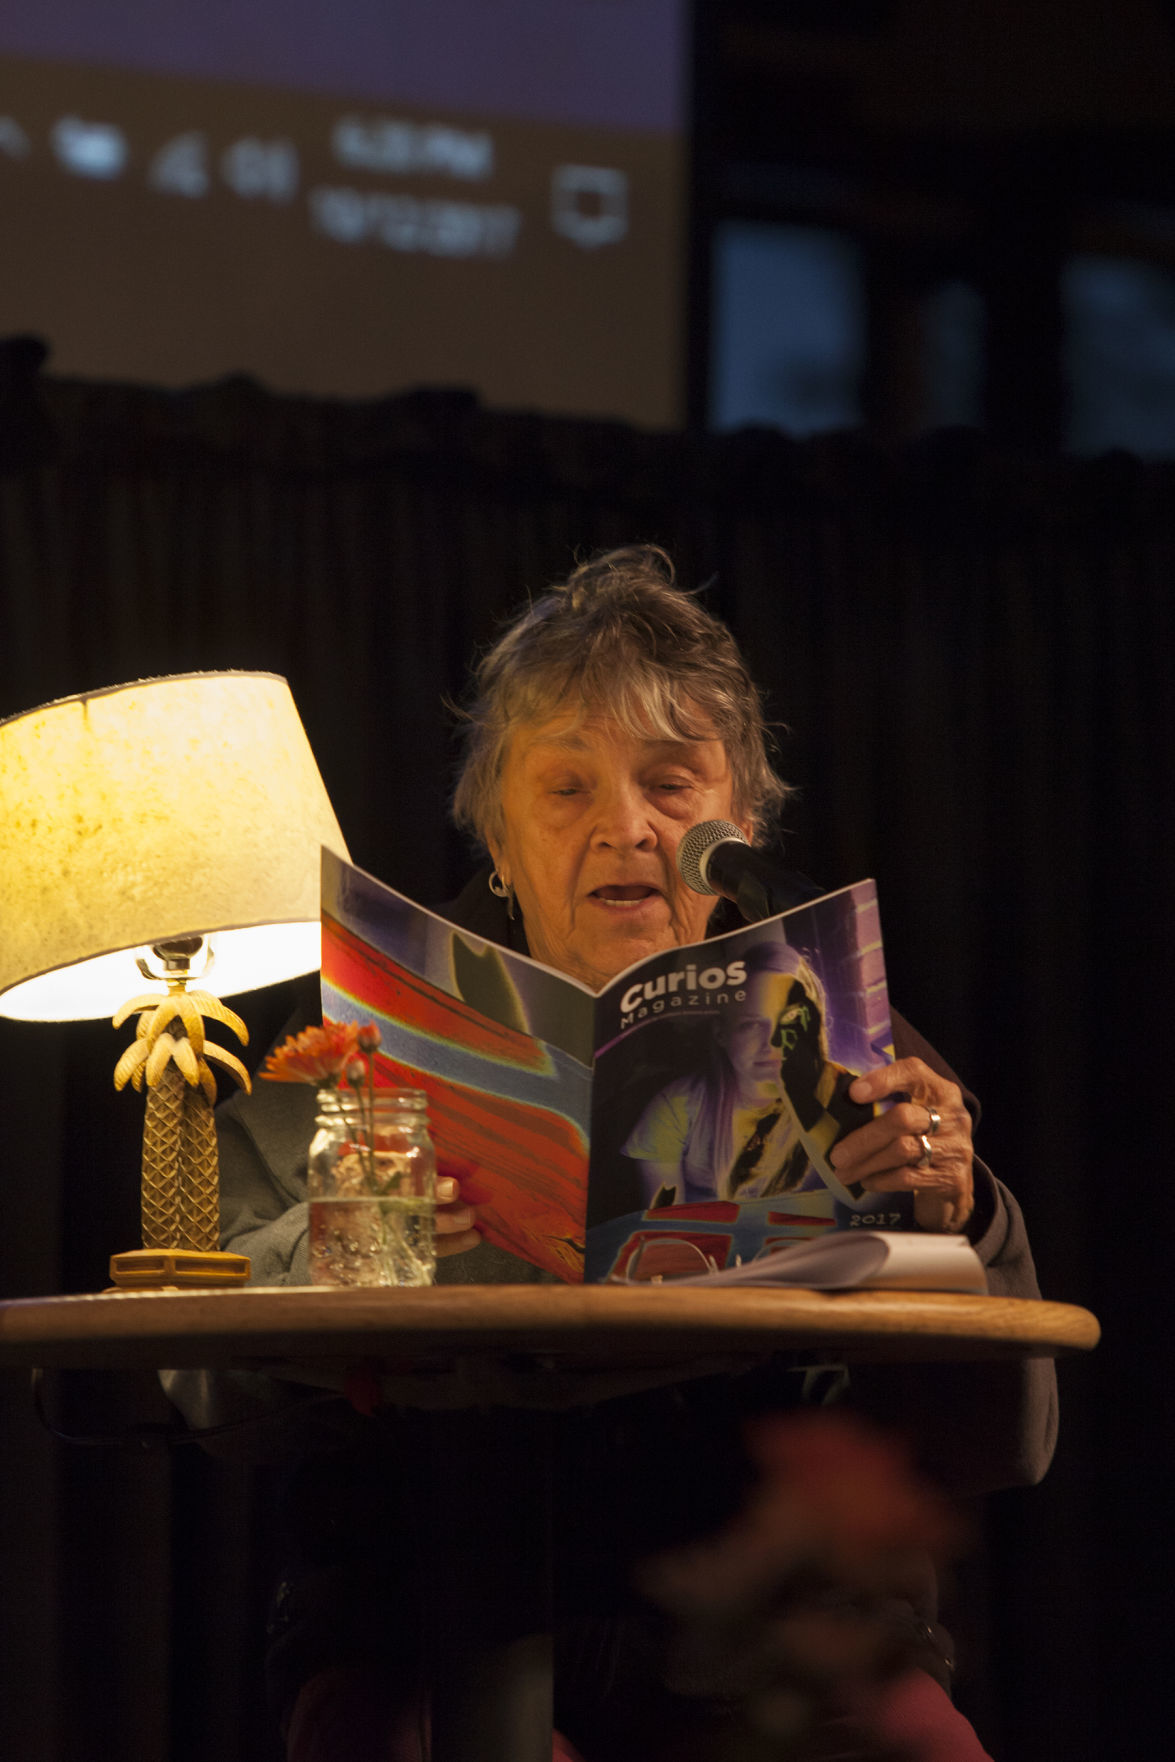 Author Mary Sojourner reading from 'Curios' during last year's book fest event at CCC. Photos by Larry Hendricks.jpg